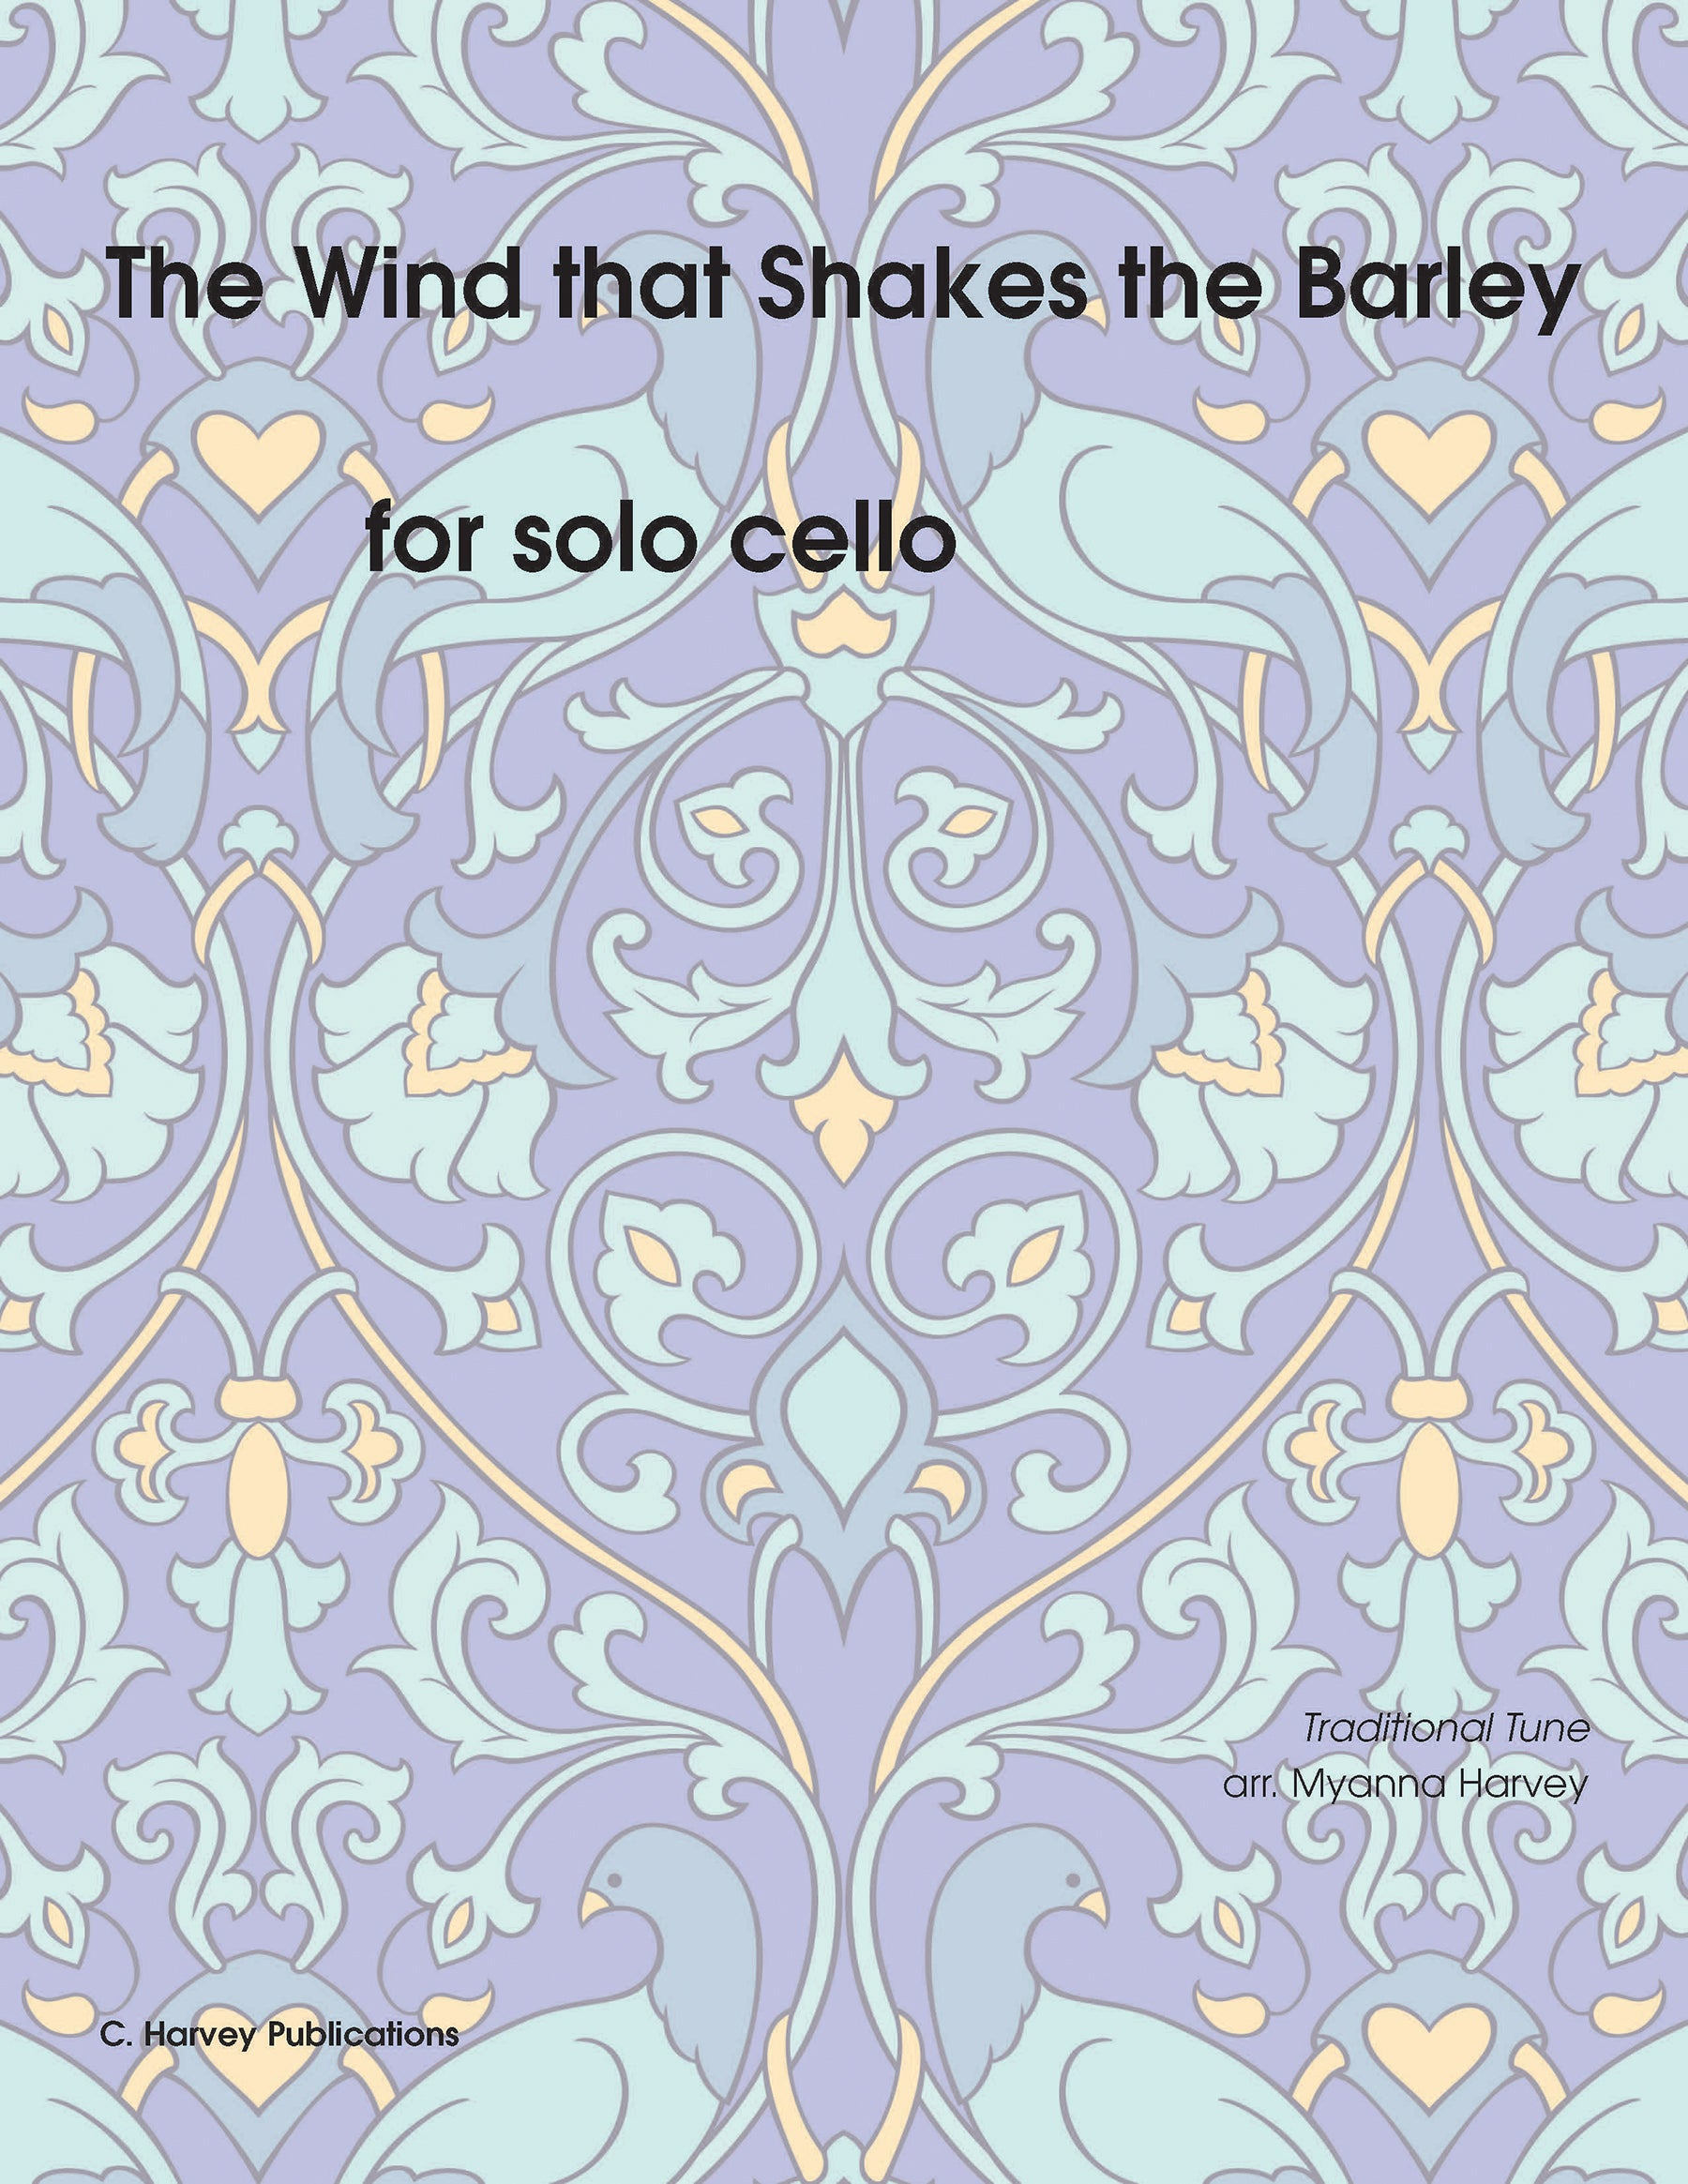 The Wind that Shakes the Barley for Solo Cello - Variations on an Unaccompanied Fiddle Tune - PDF download